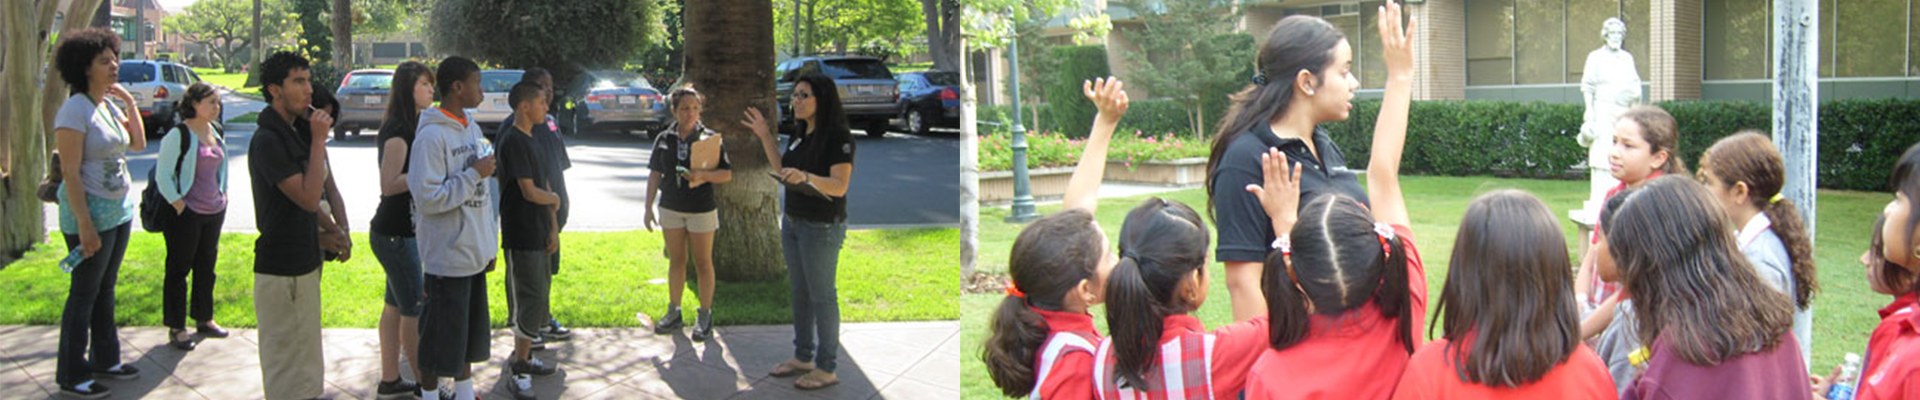 tour guides with groups of younger students